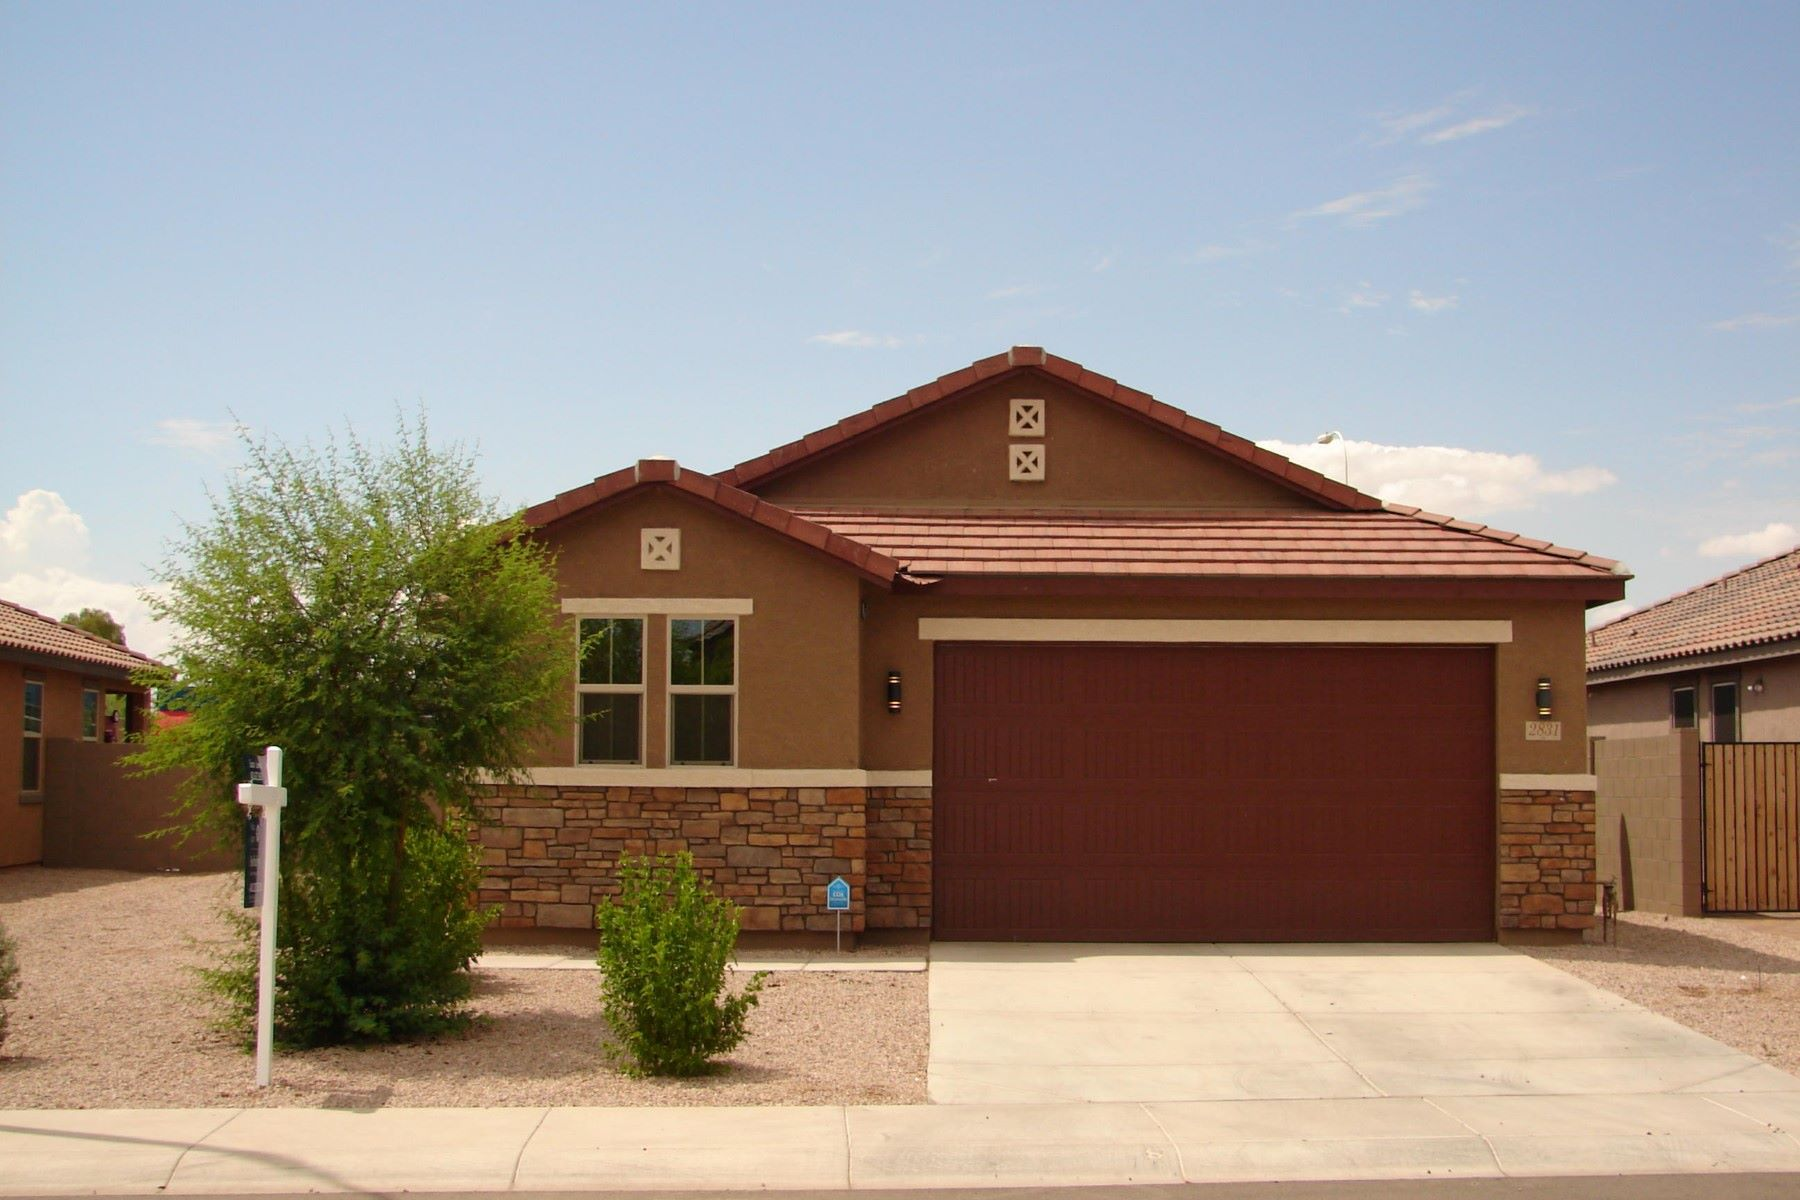 Maison unifamiliale pour l Vente à Sharp single story home in Fire Rock Ranch 2831 E Binner Dr Chandler, Arizona 85225 États-Unis